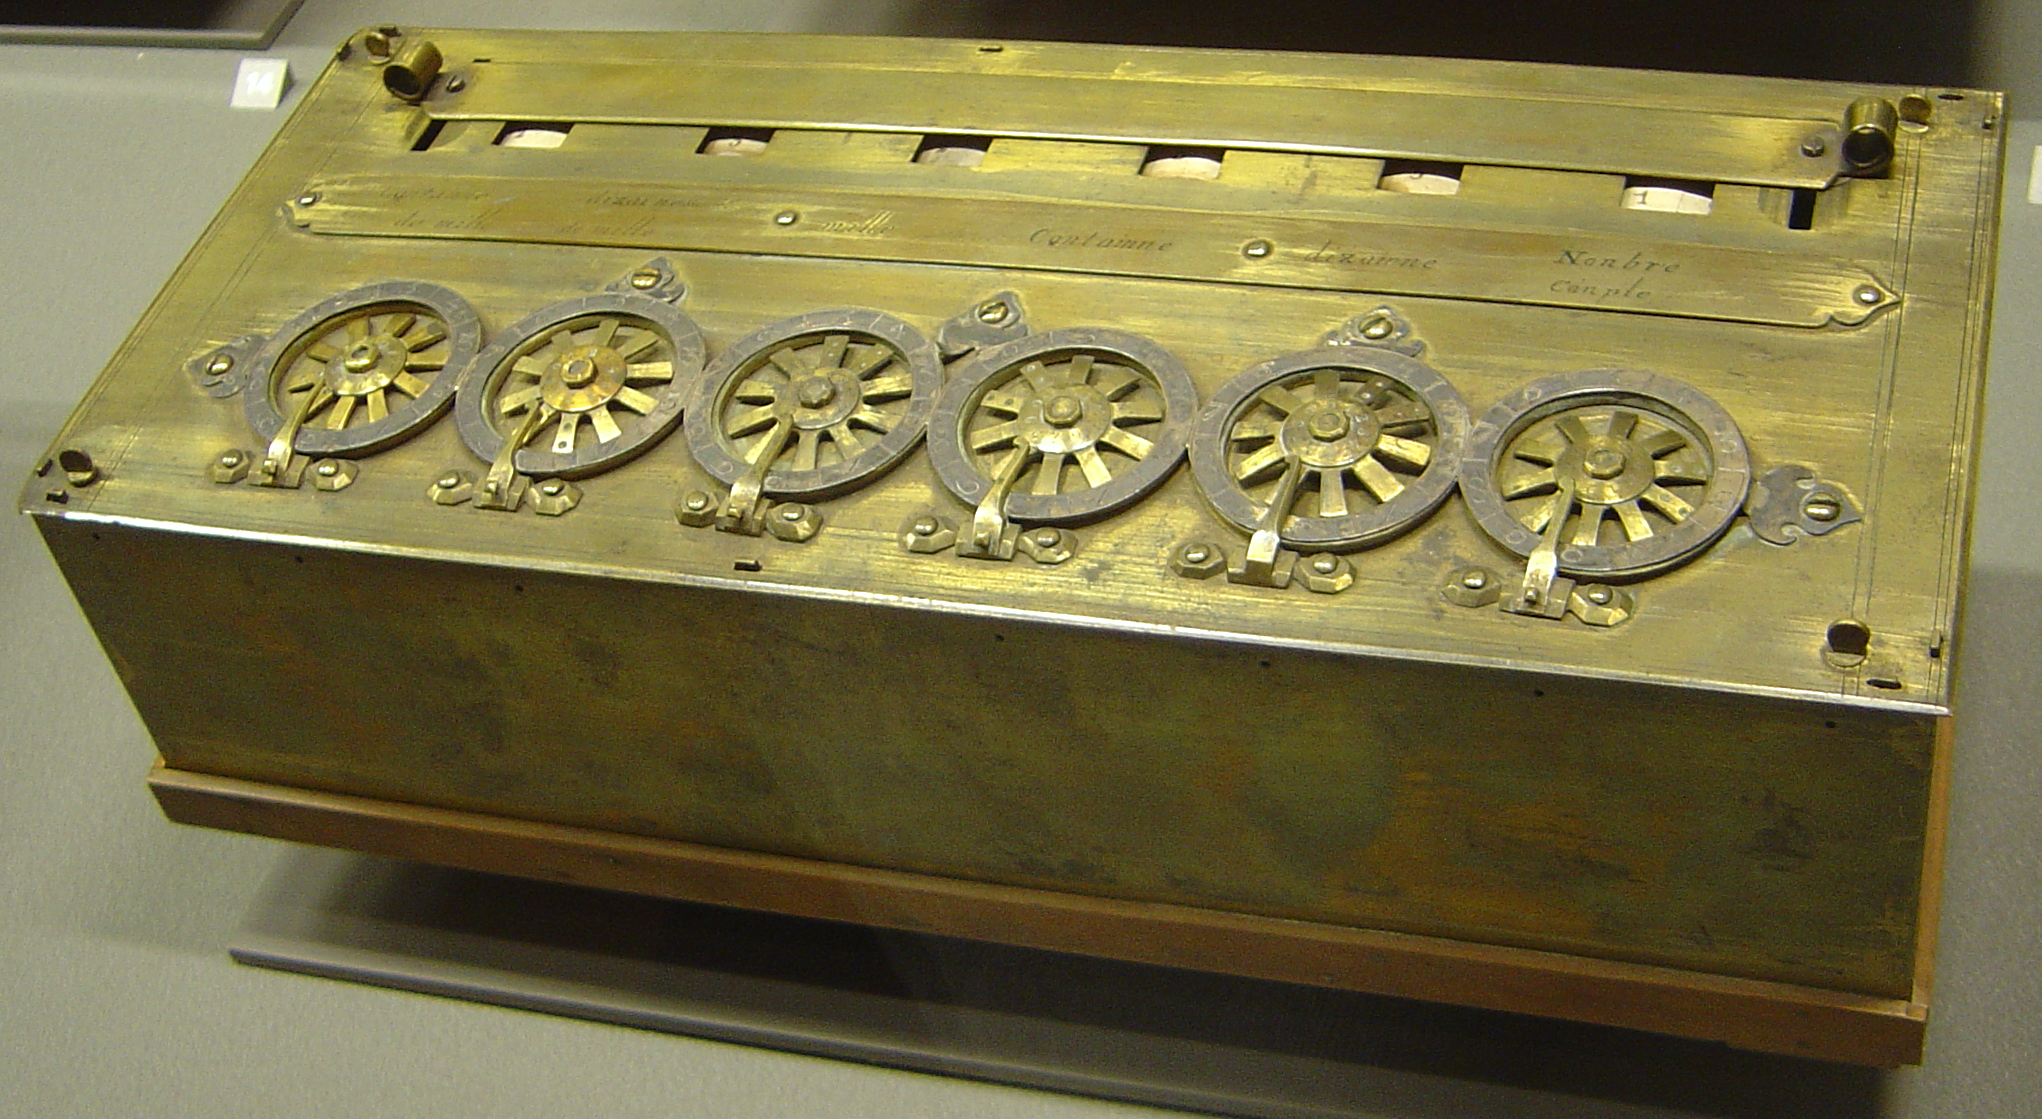 Blaise Pascal's Calculator